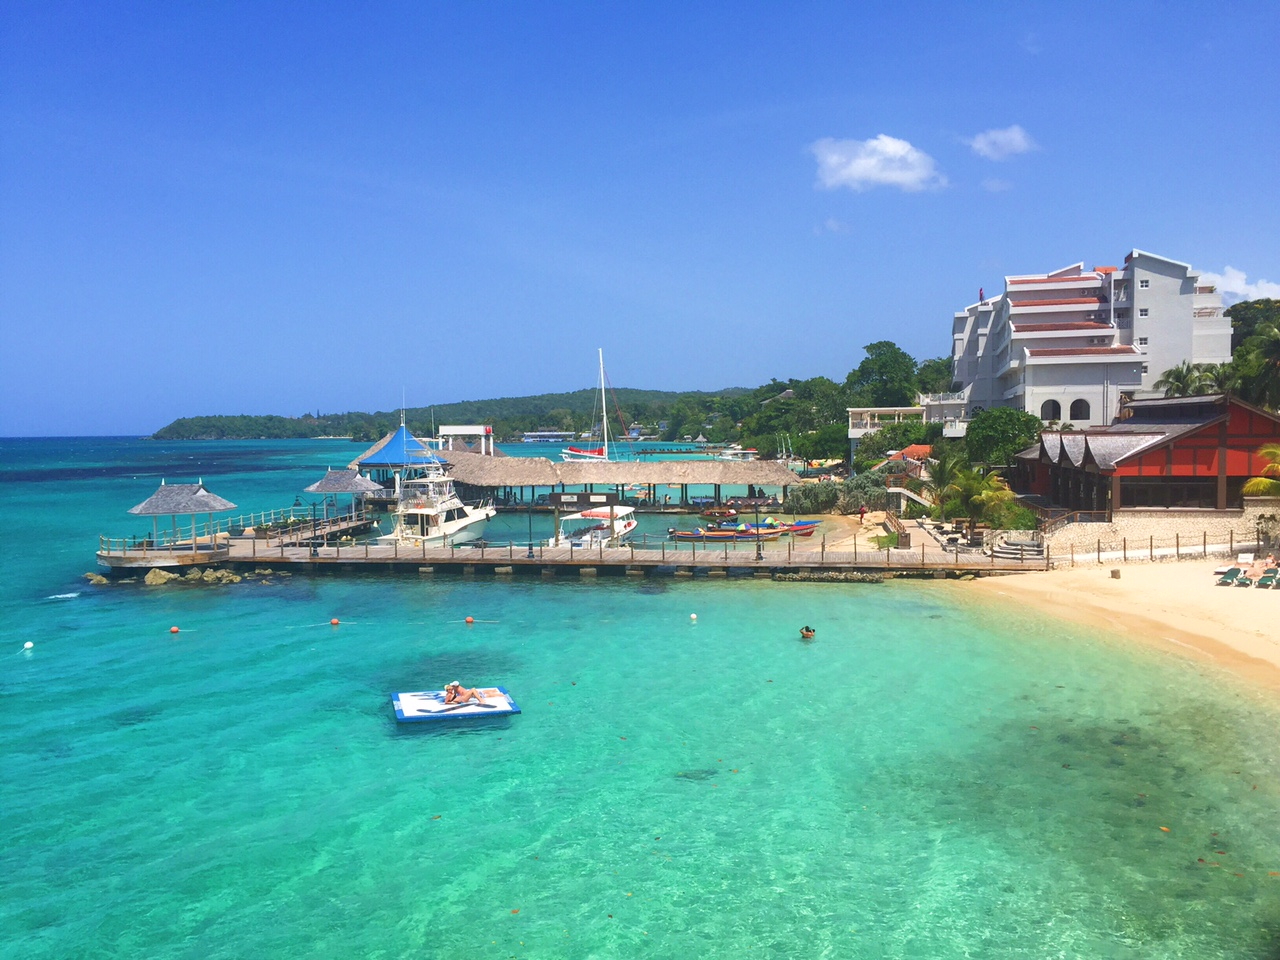 78c43d7575fb 3 Things To Know About Sandals Ochi. Photo Sandals Ochi Beach Sandals  Debuts Revamped Ochi Beach Resort In Ocho Rios